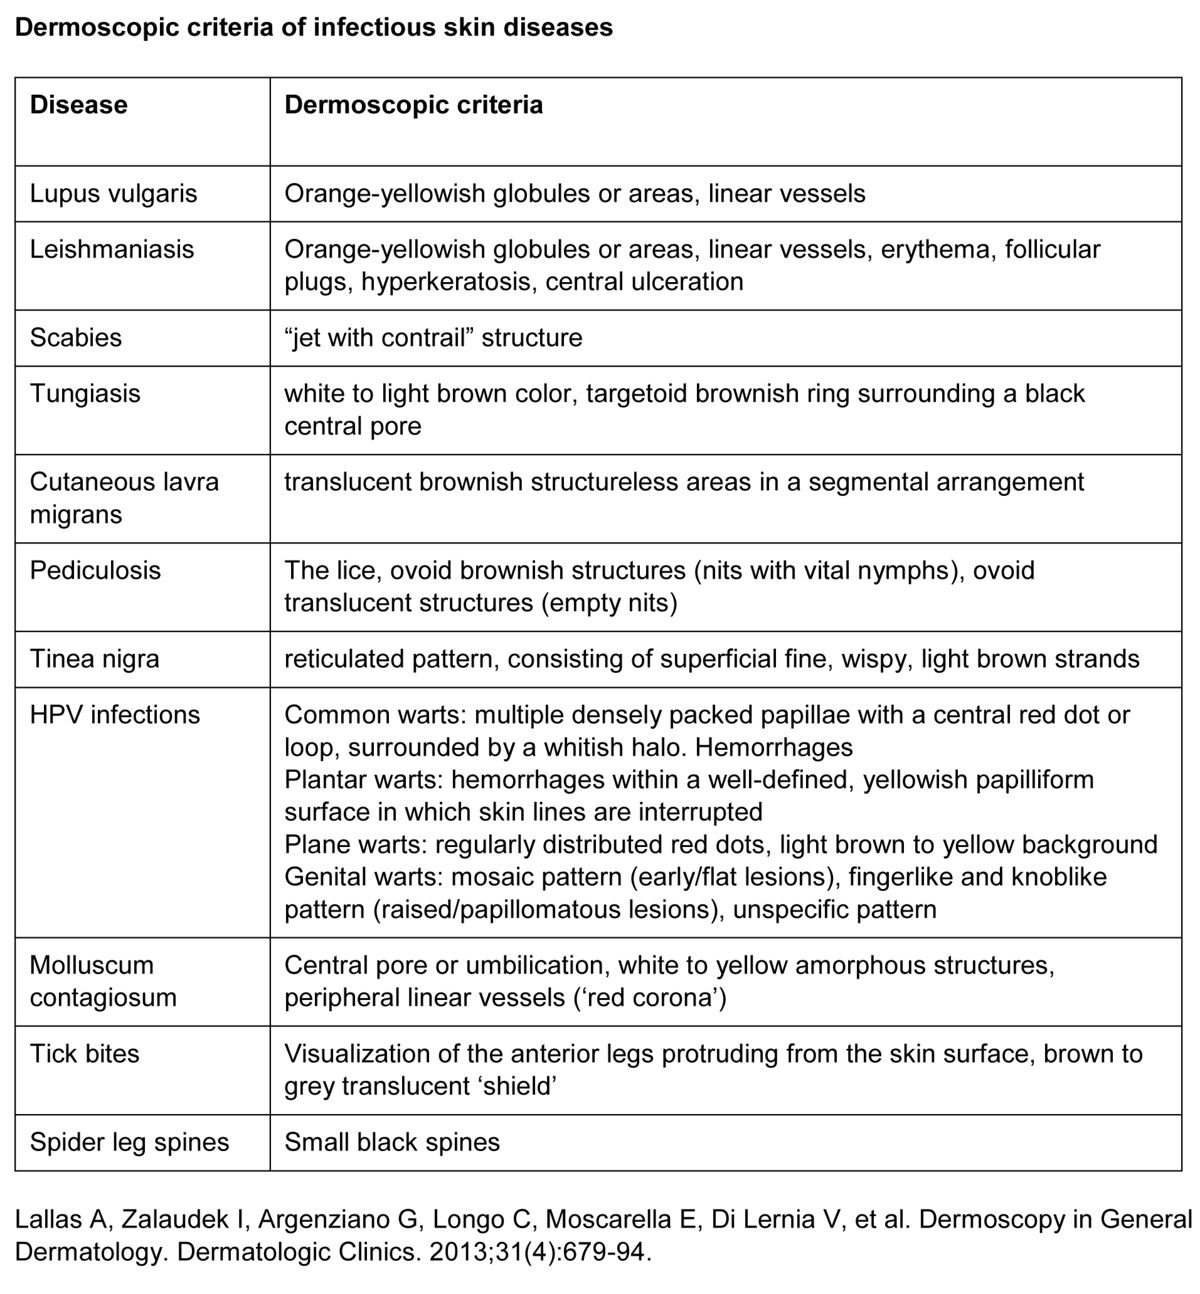 Dermoscopic criteria of infectious skin diseases.jpg